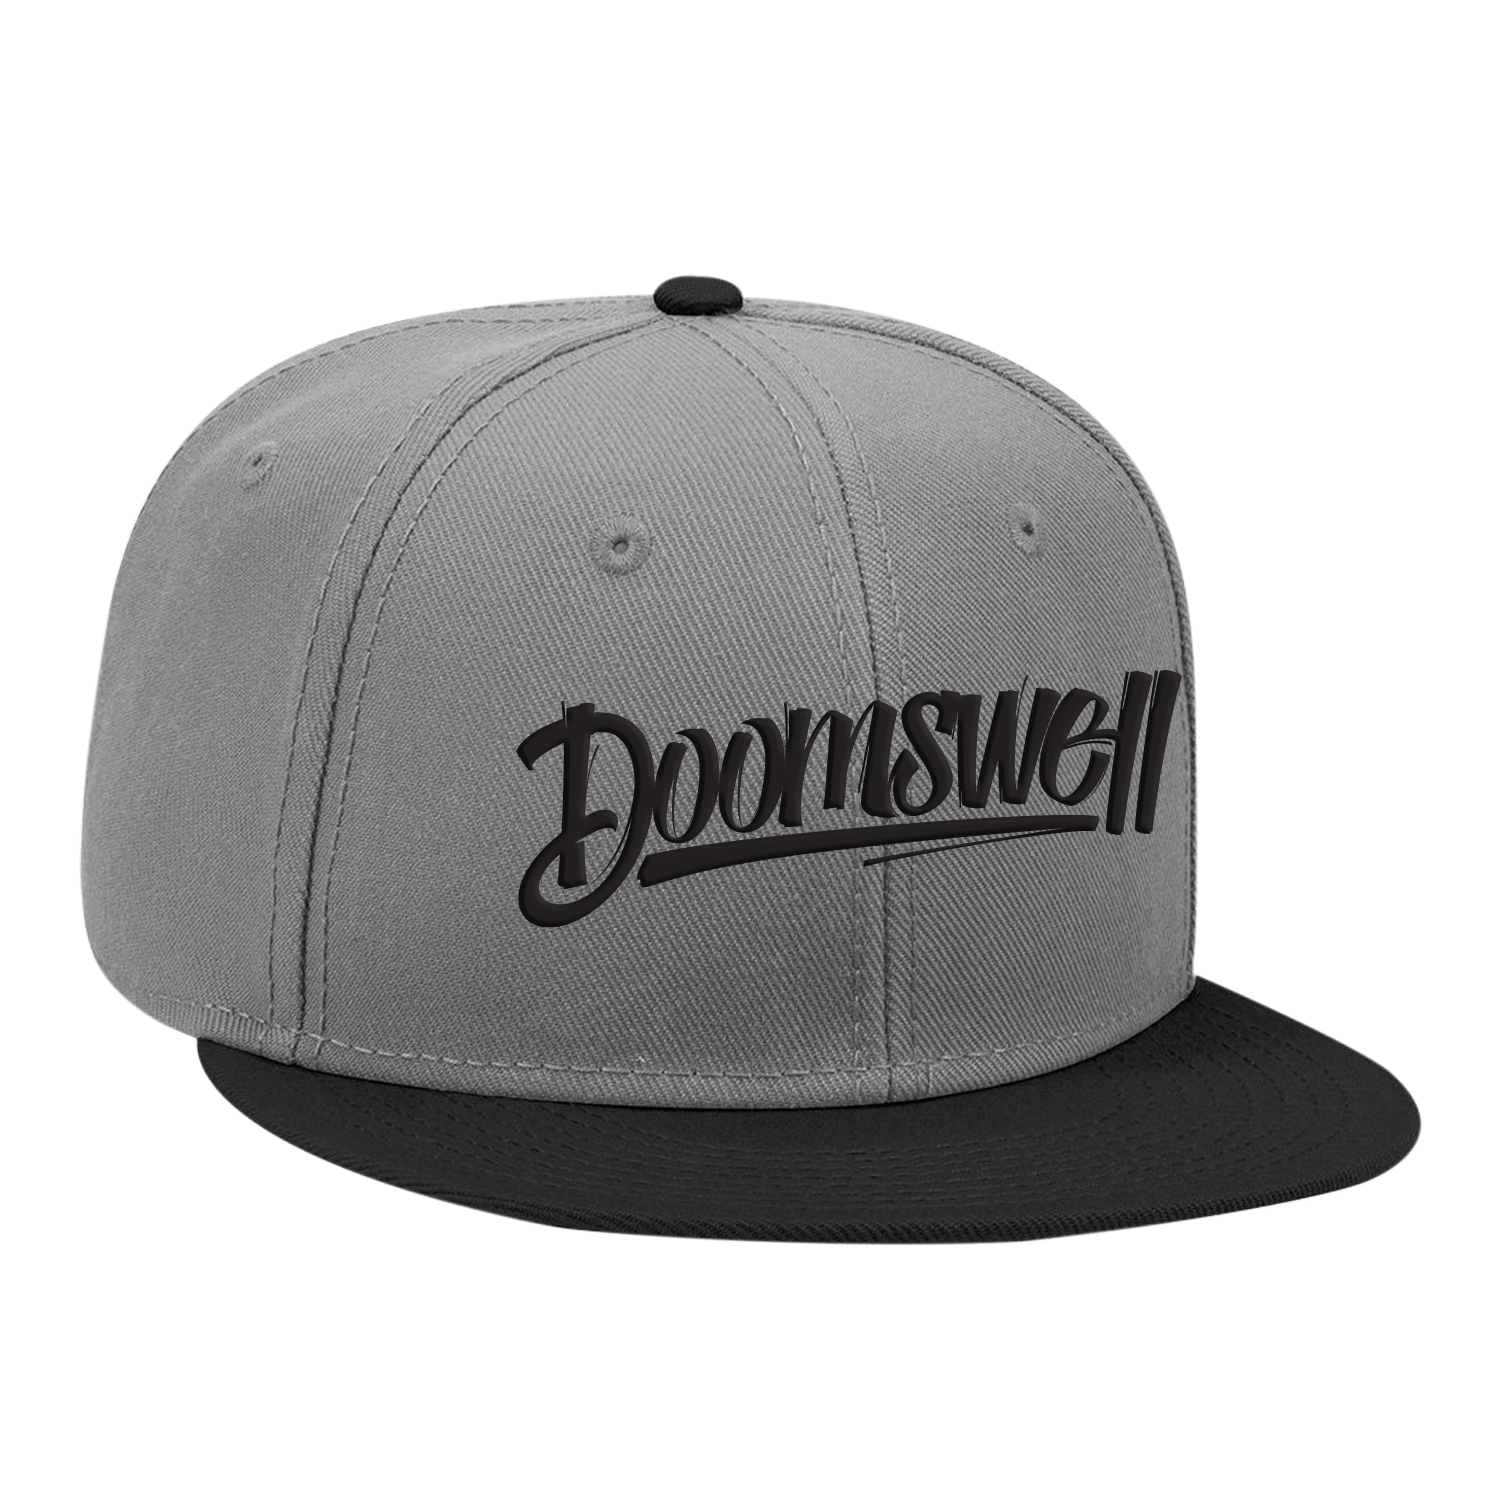 Doomswell Boarding Co. Hats Grey Script Hat-Grey